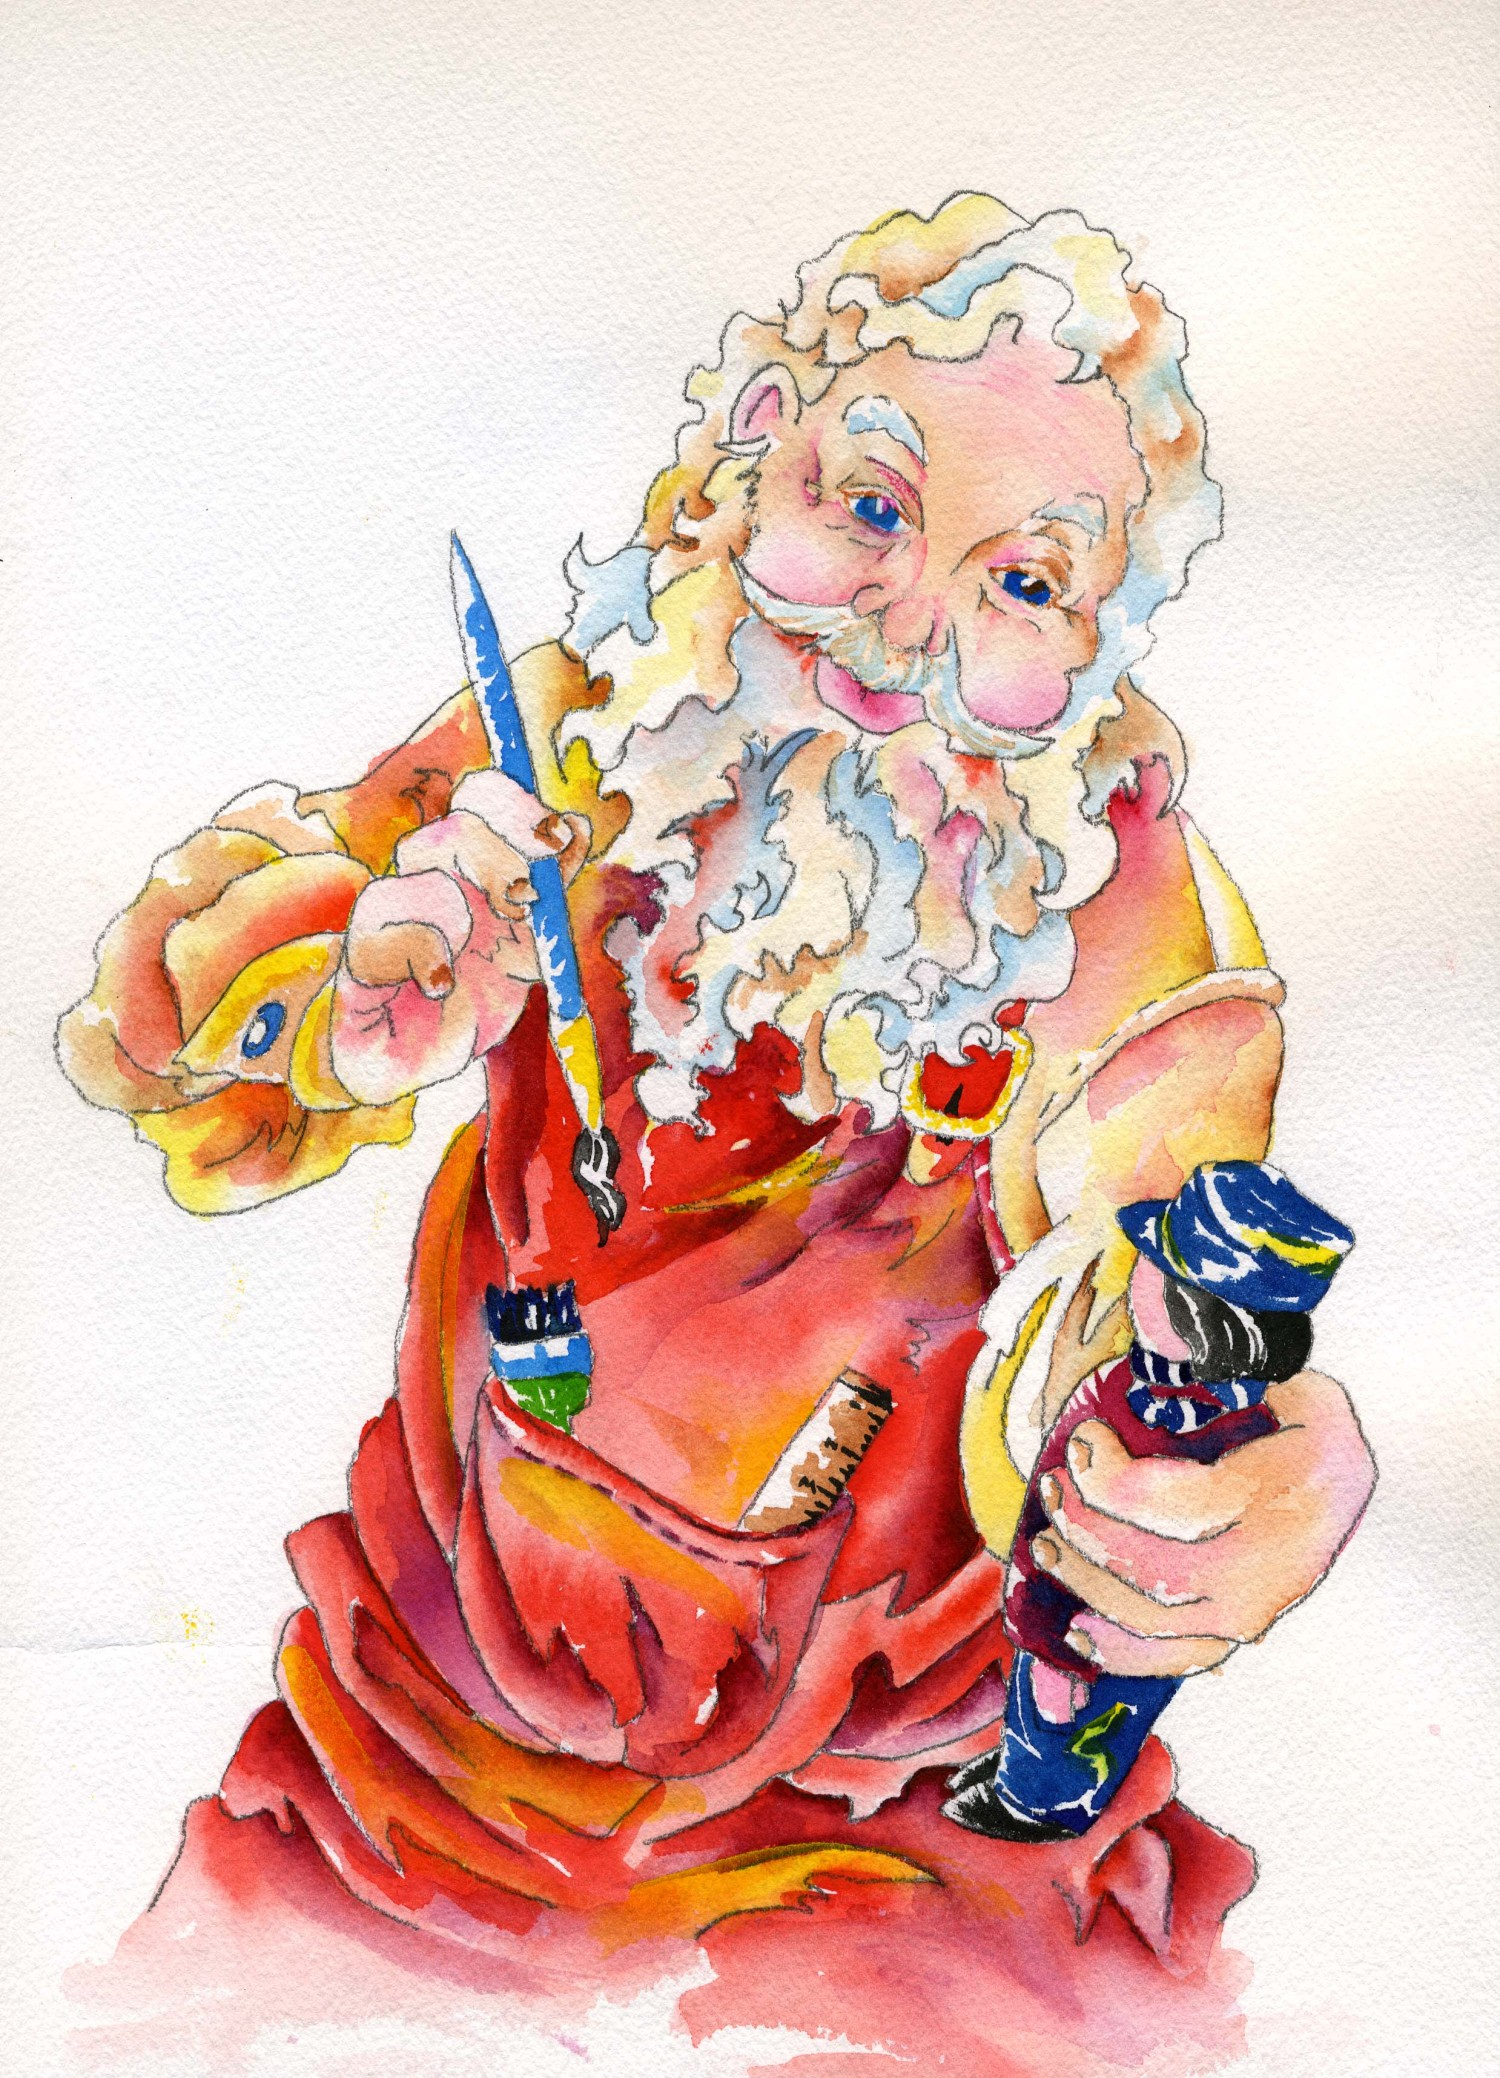 Handyman Santa by Valerie, your teacher!